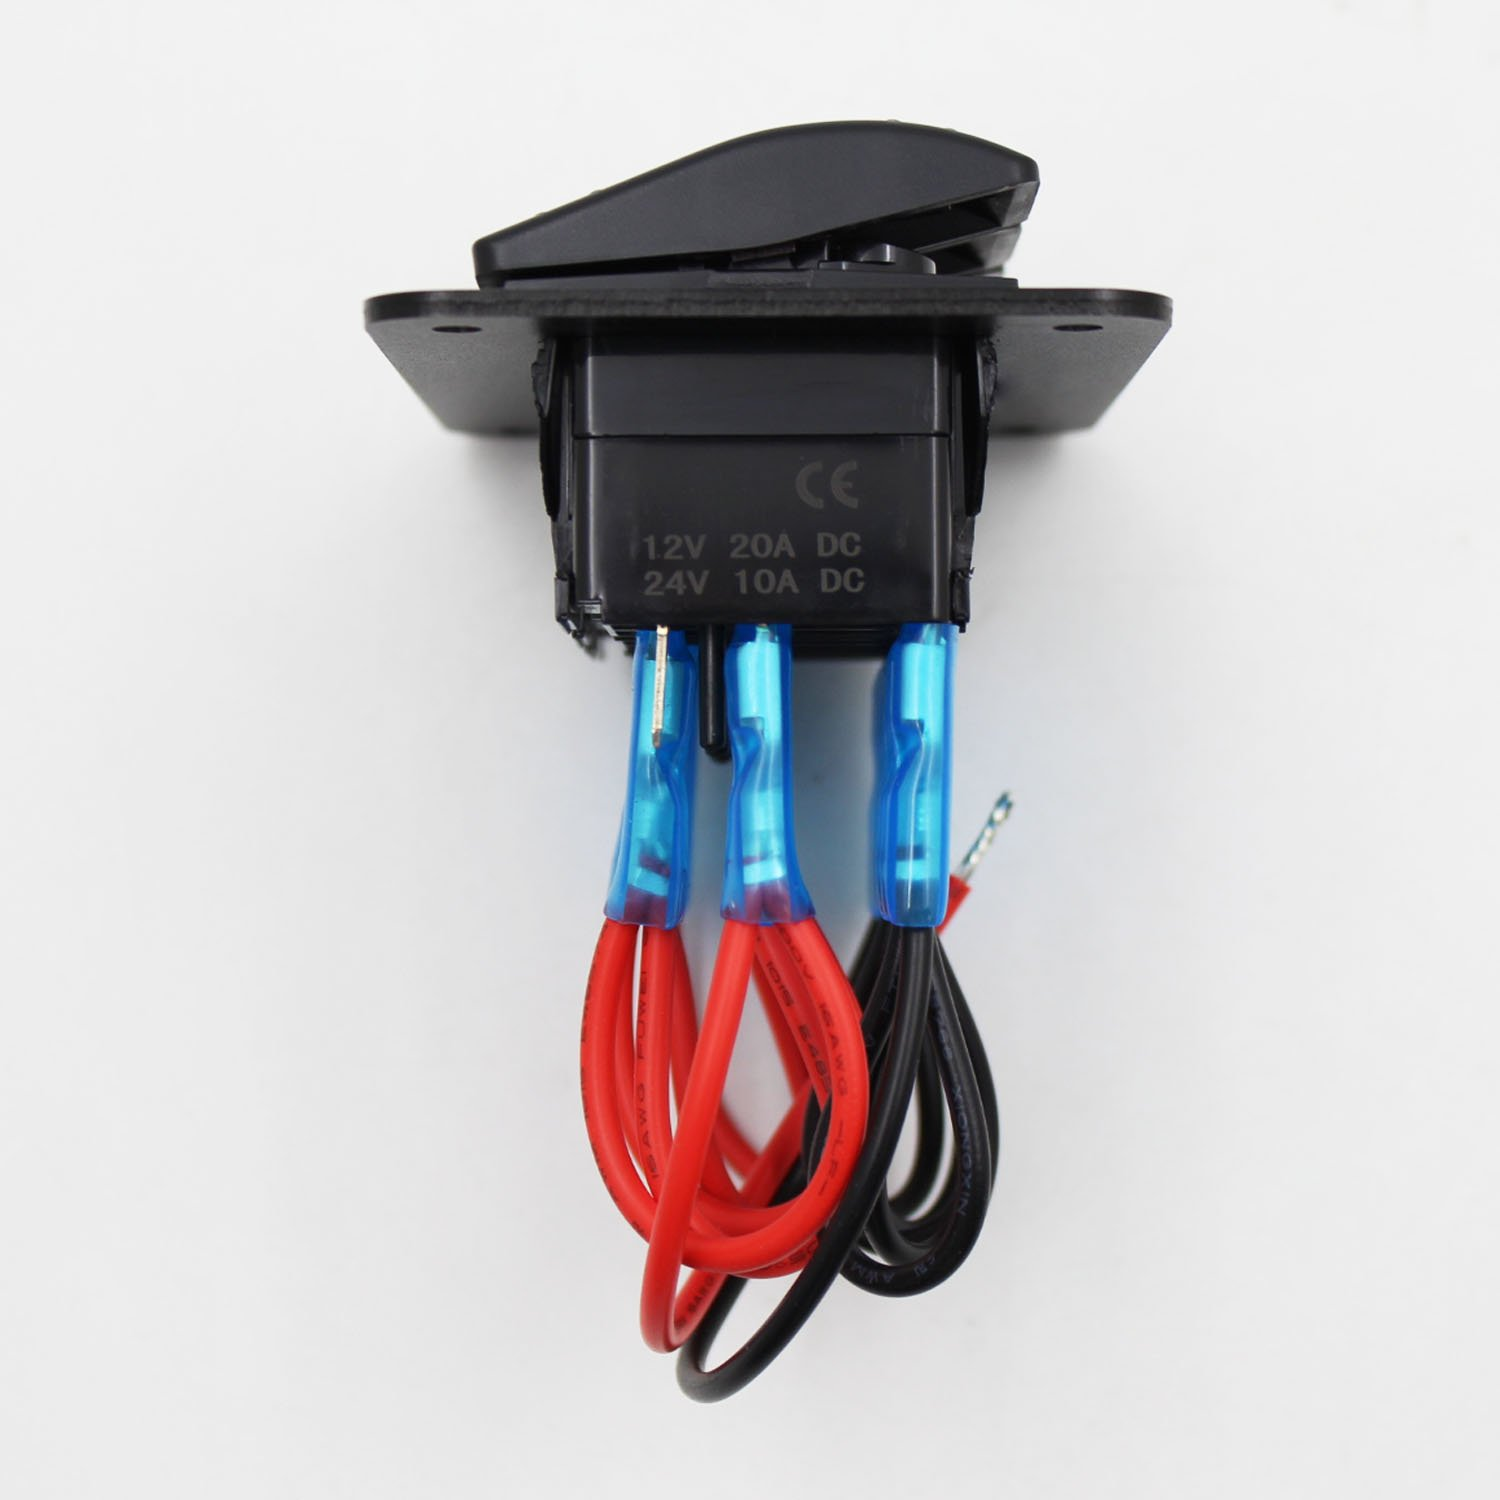 FXC Rocker Switch Aluminum Panel 3 Gang Toggle Switches Dash 5 Pin ON/Off 2 LED Backlit for Boat Car Marine Blue by FXC